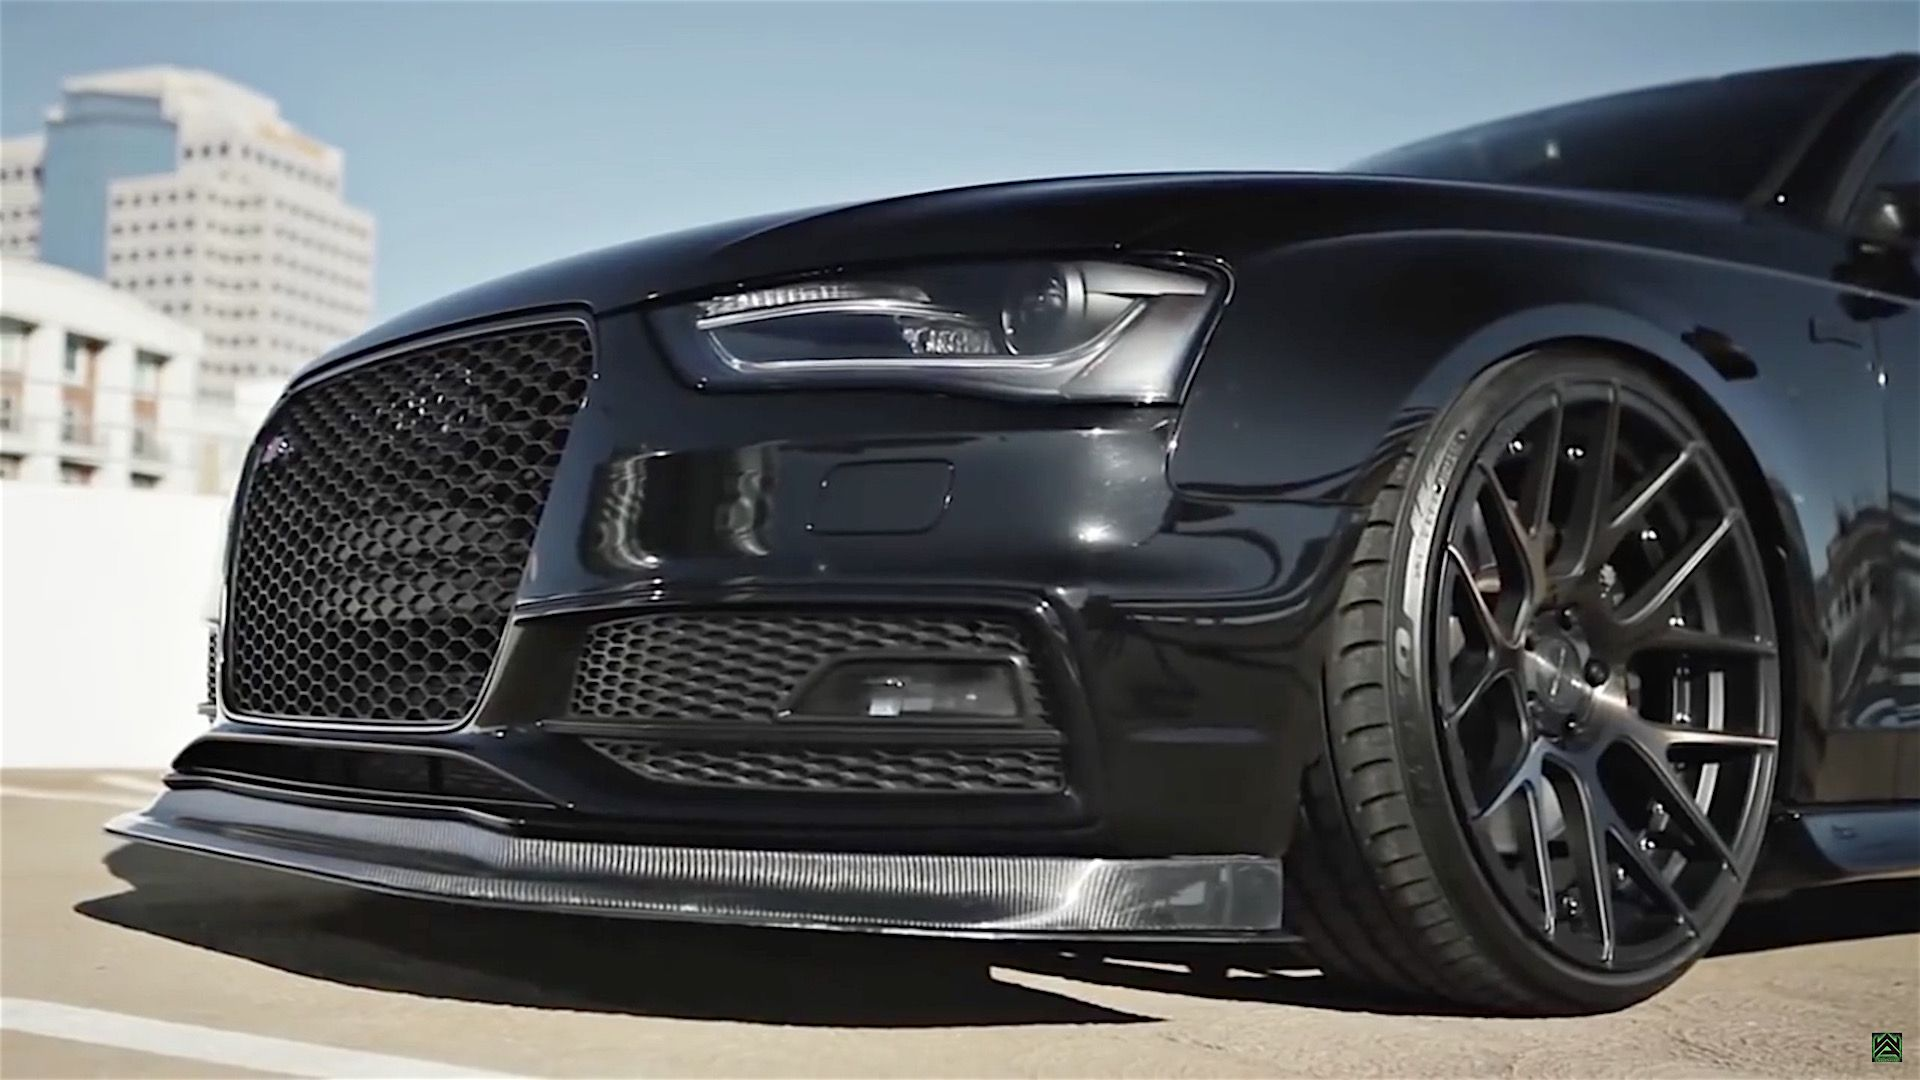 Audi s4 with armytrix exhaust system and stance